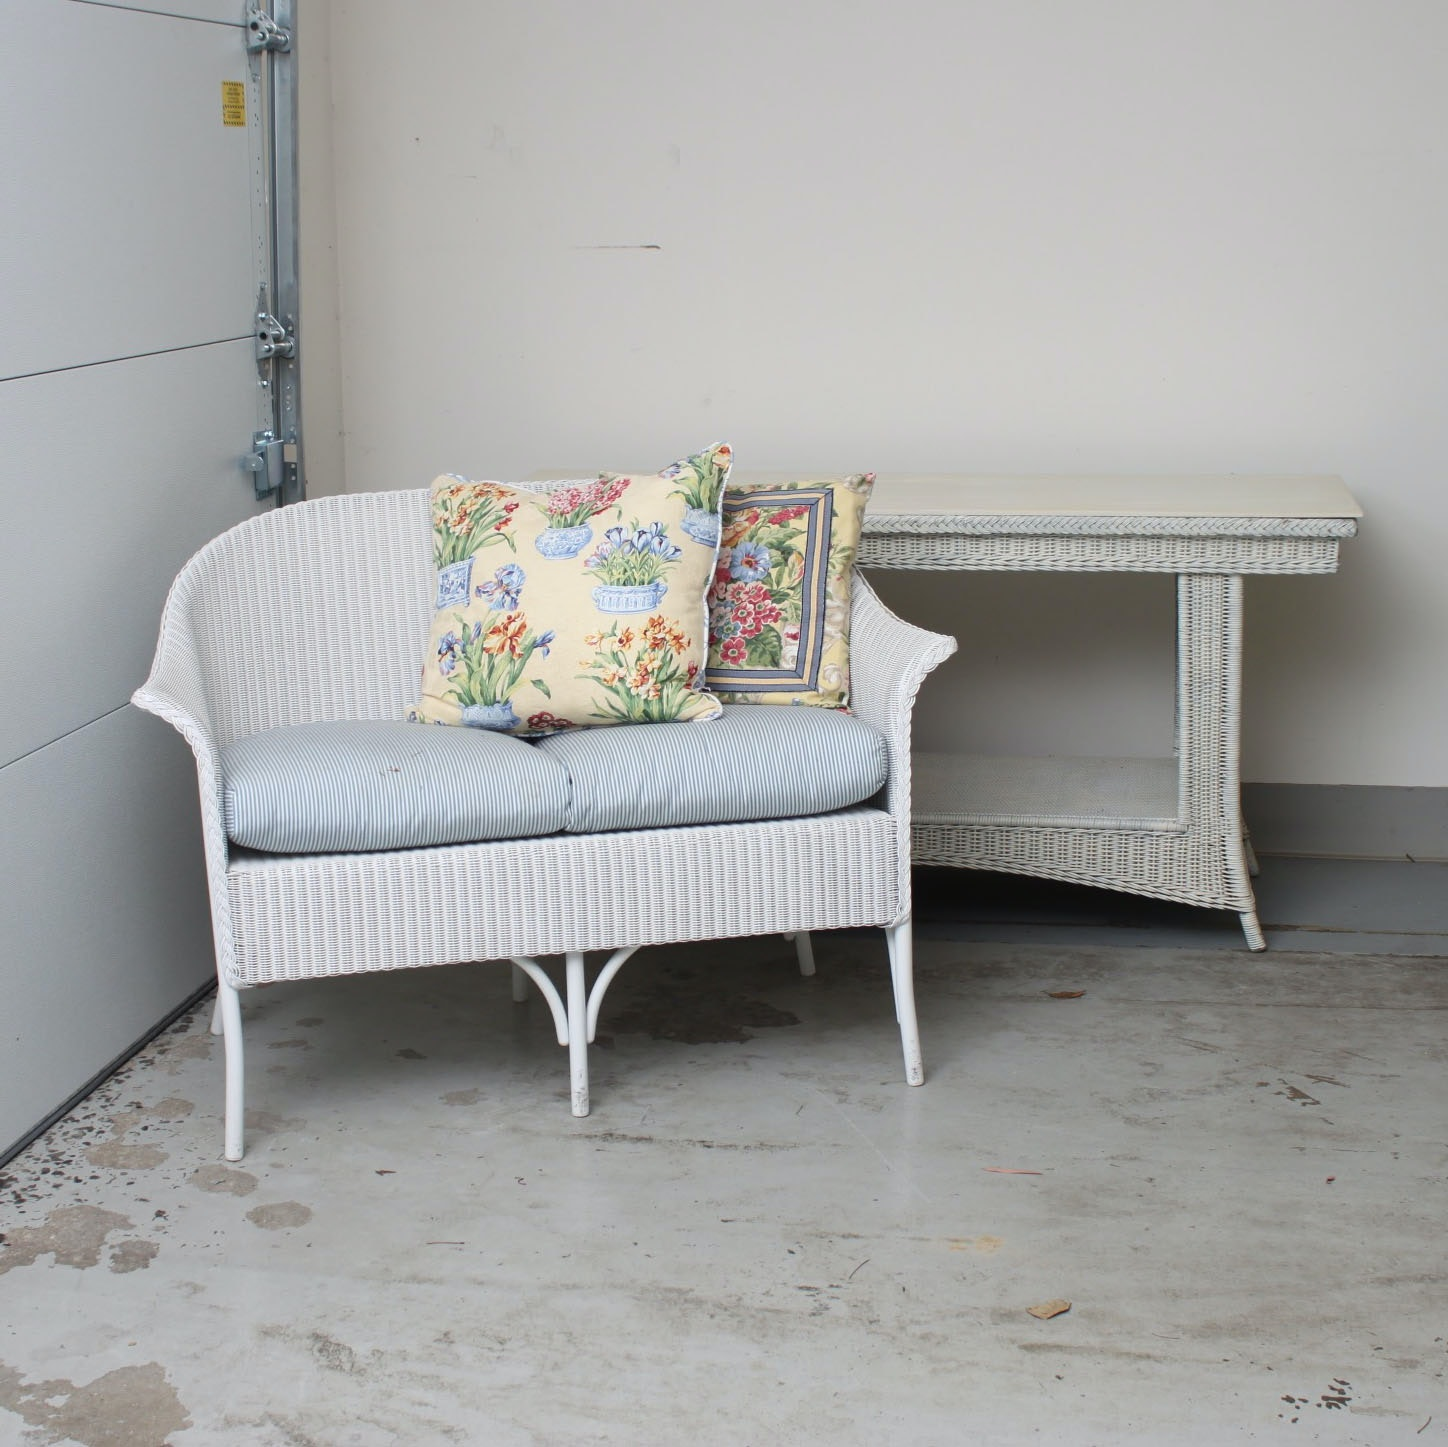 Wicker Bench and Console Table